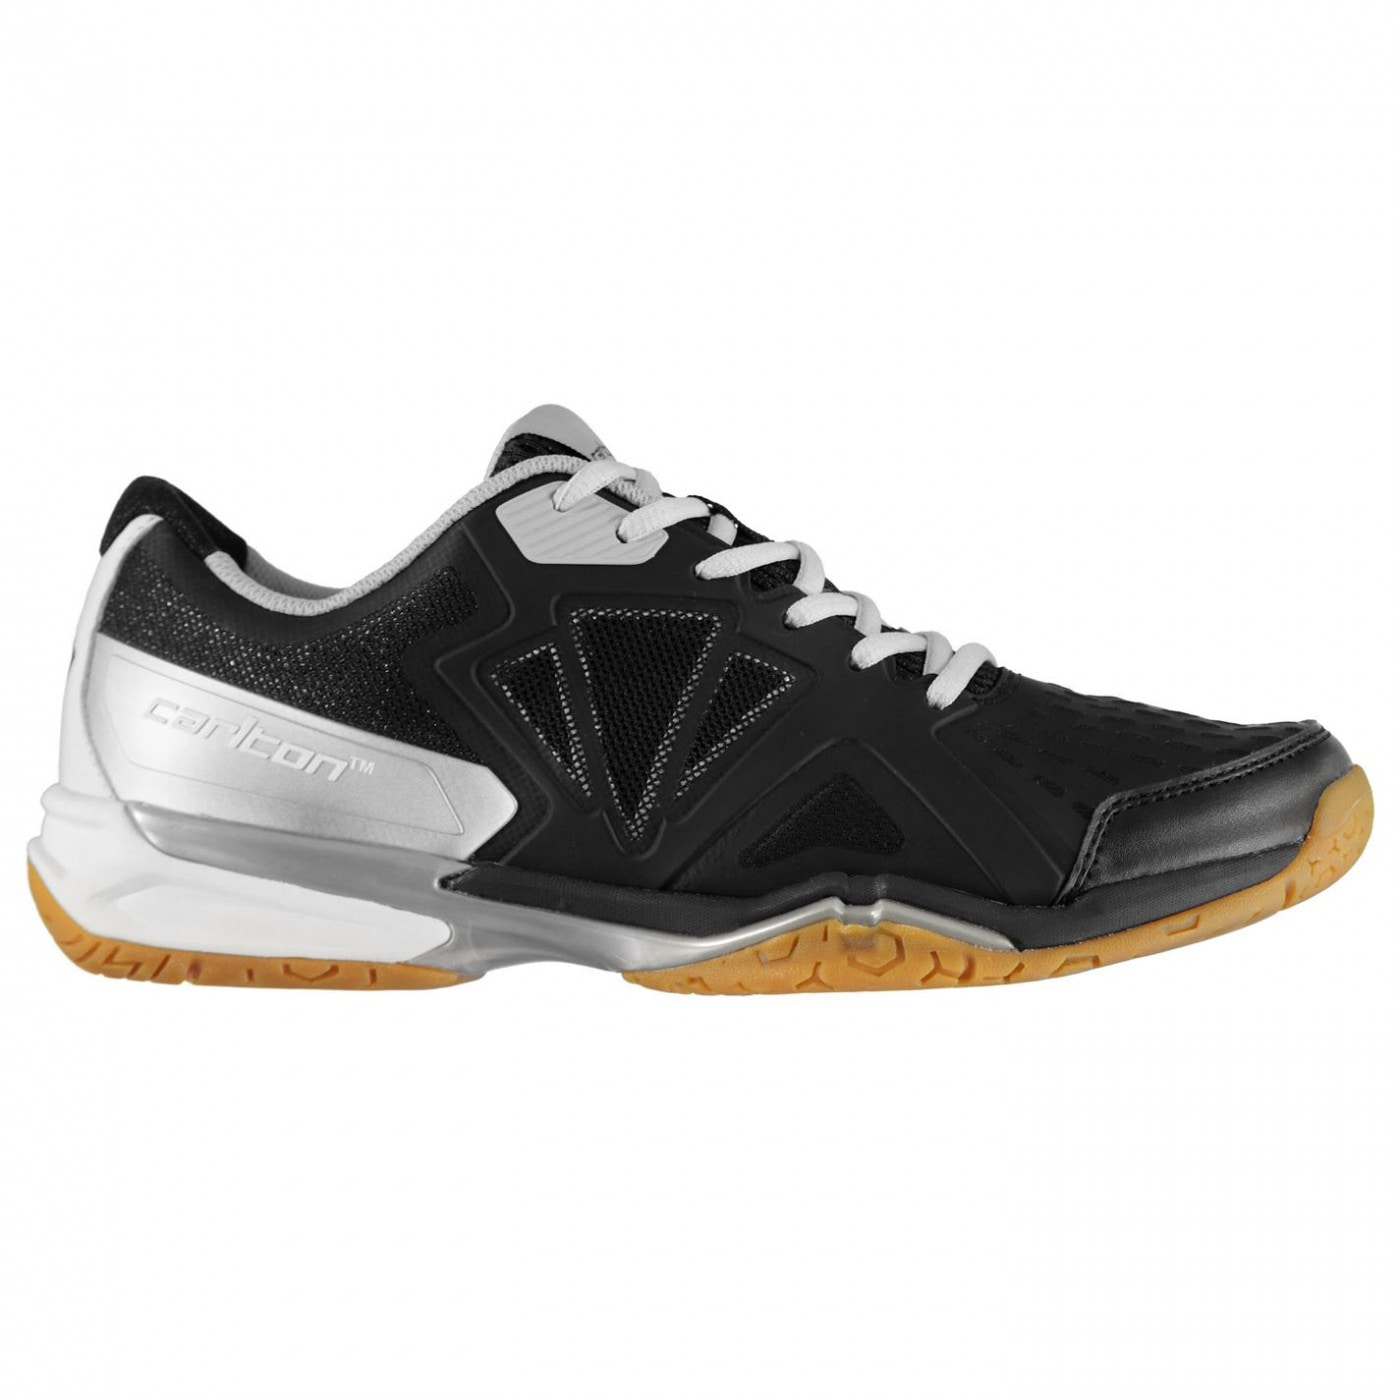 Carlton Xelerate Lite Mens Badminton Shoes